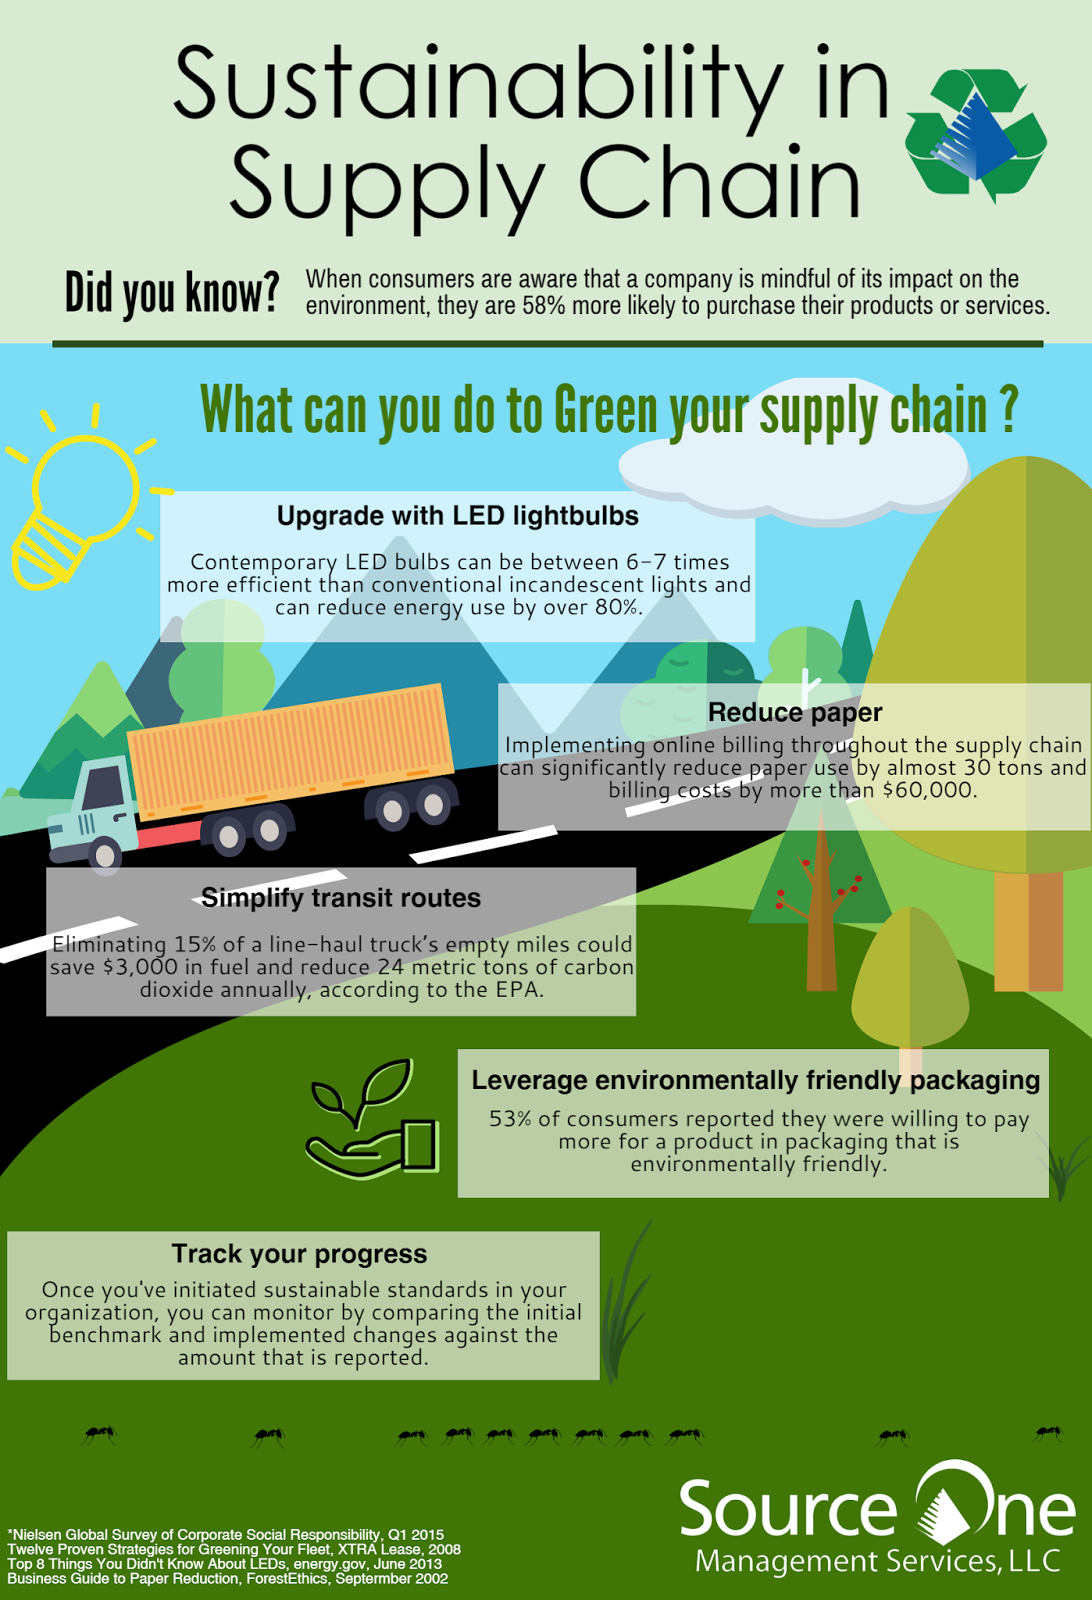 Sustainability in Supply Chain Infographic